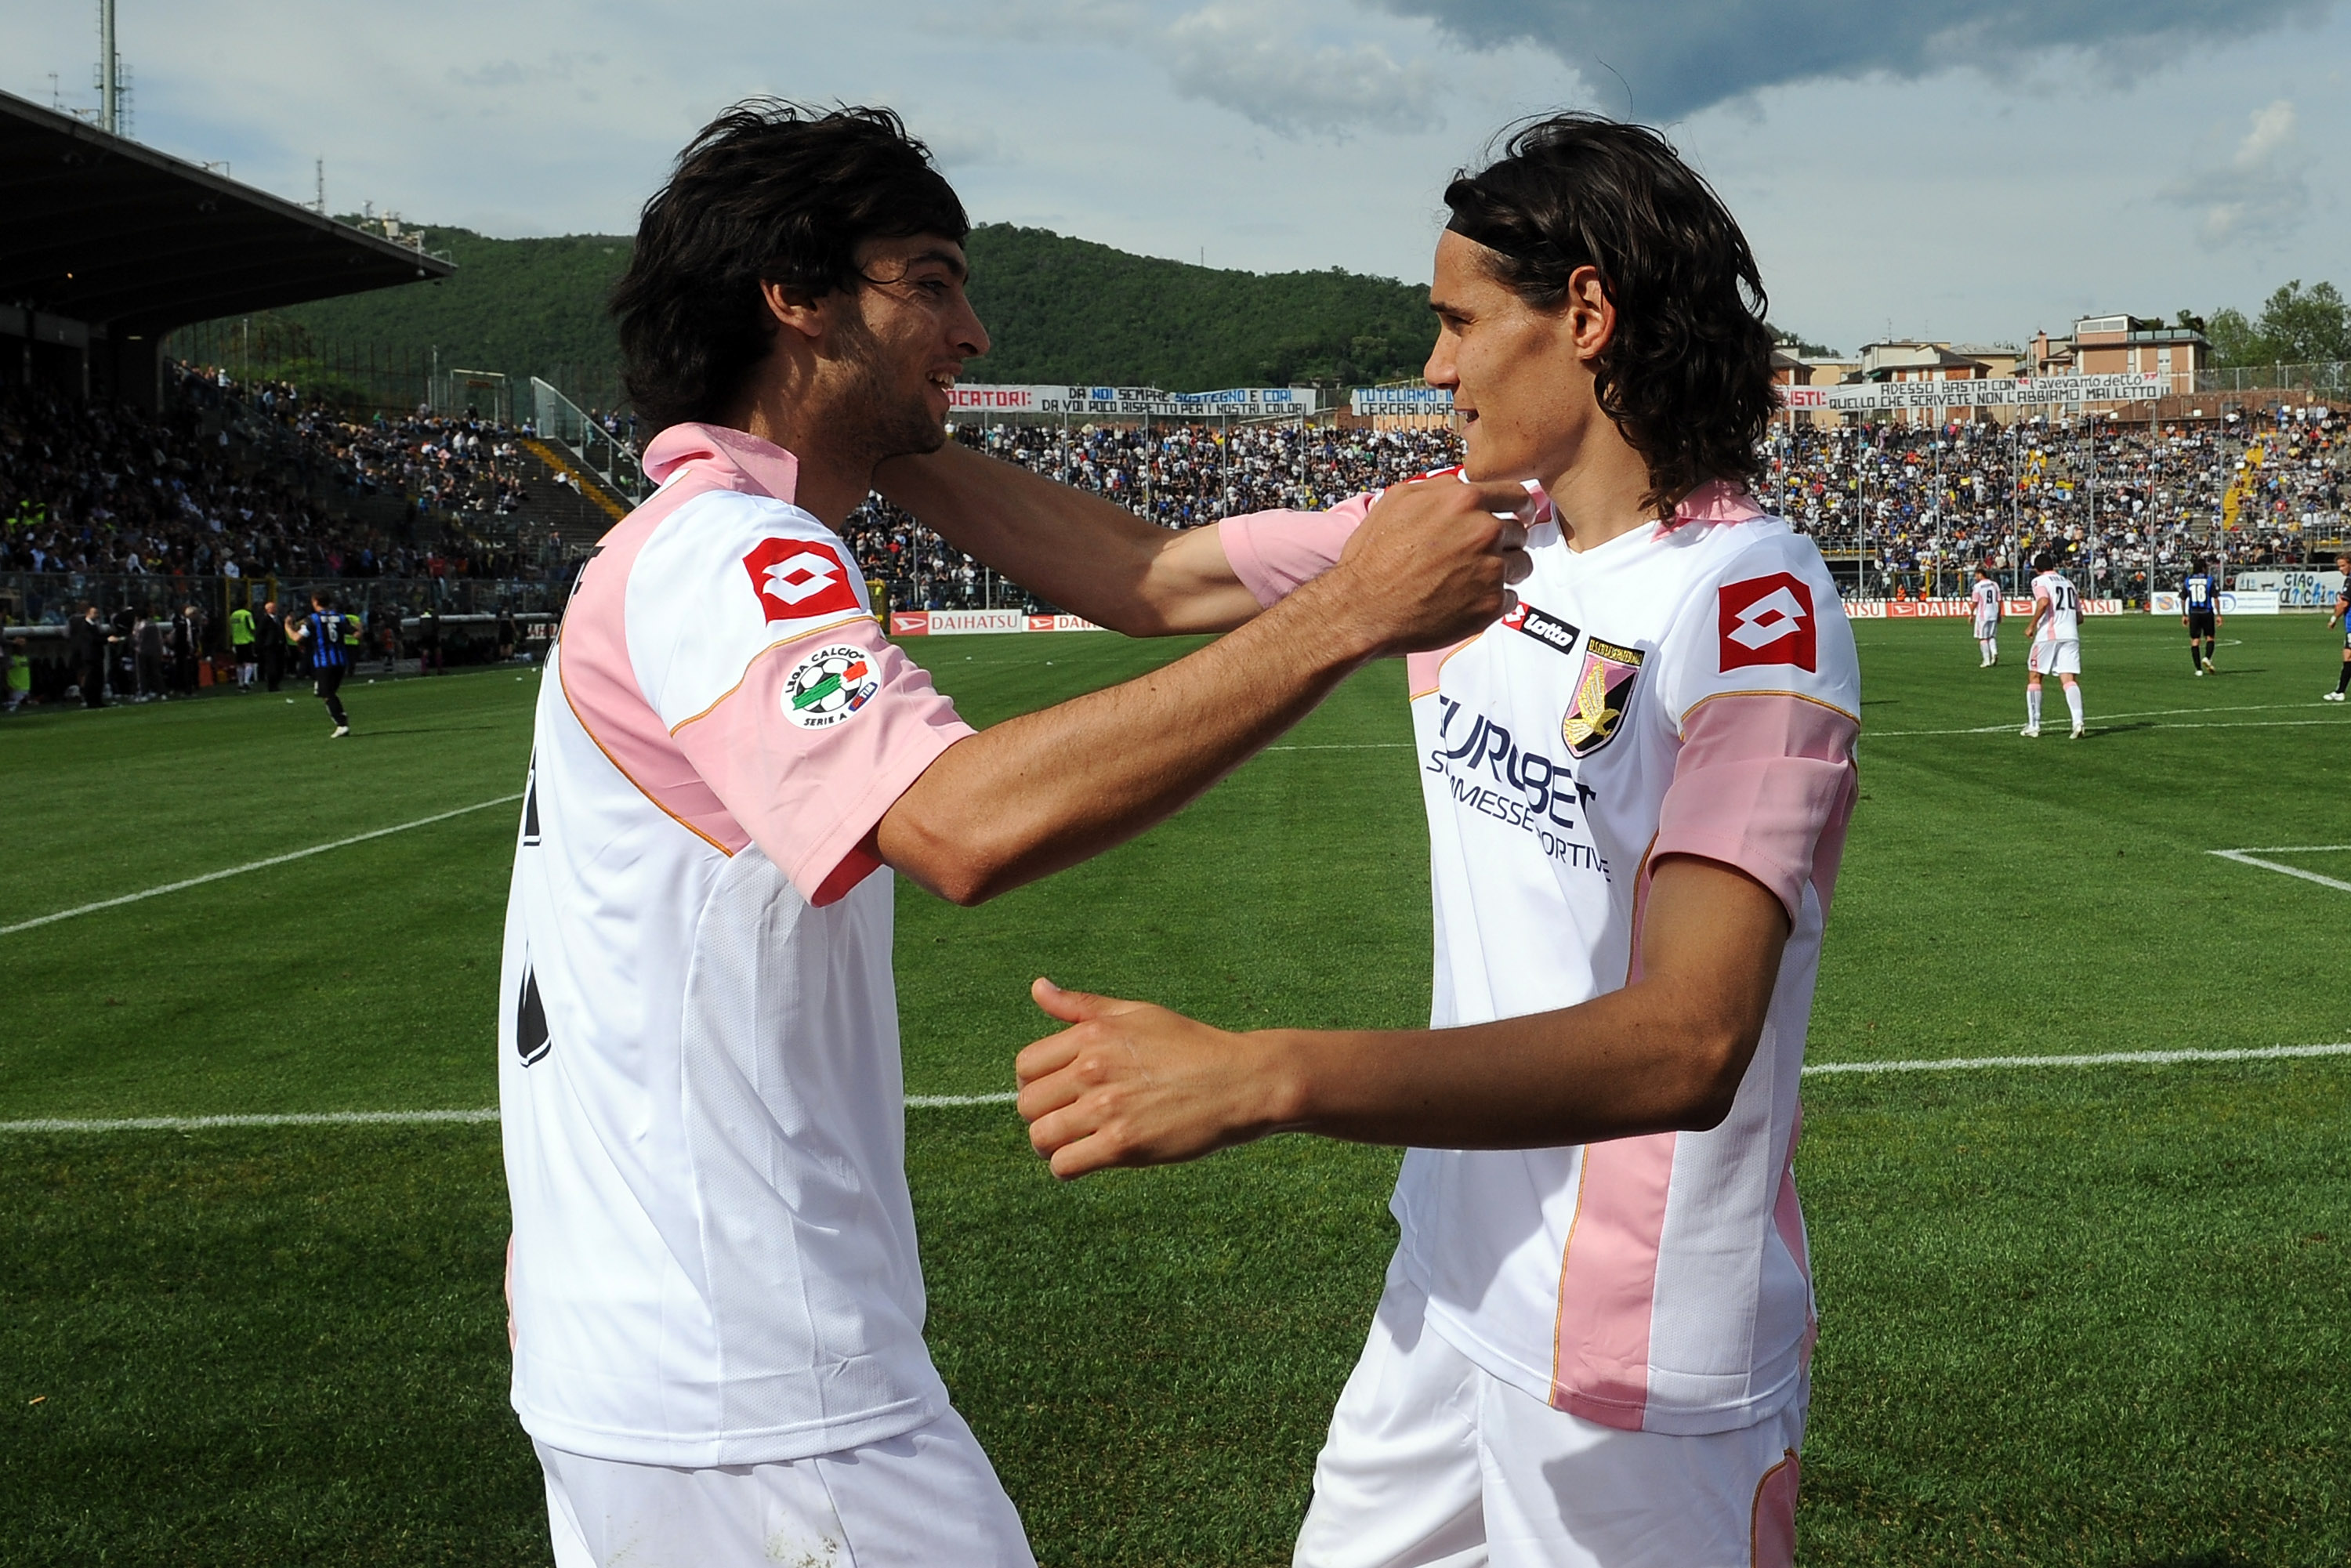 BERGAMO, ITALY - MAY 16: Edinson Cavani (R) of Palermo celebrates with his team mate Javier Pastore after scoring a penalty (1:2) during the Serie A match between Atalanta BC and US Citta di Palermo at Stadio Atleti Azzurri d'Italia on May 16, 2010 in Bergamo, Italy. (Photo by Tullio M. Puglia/Getty Images)